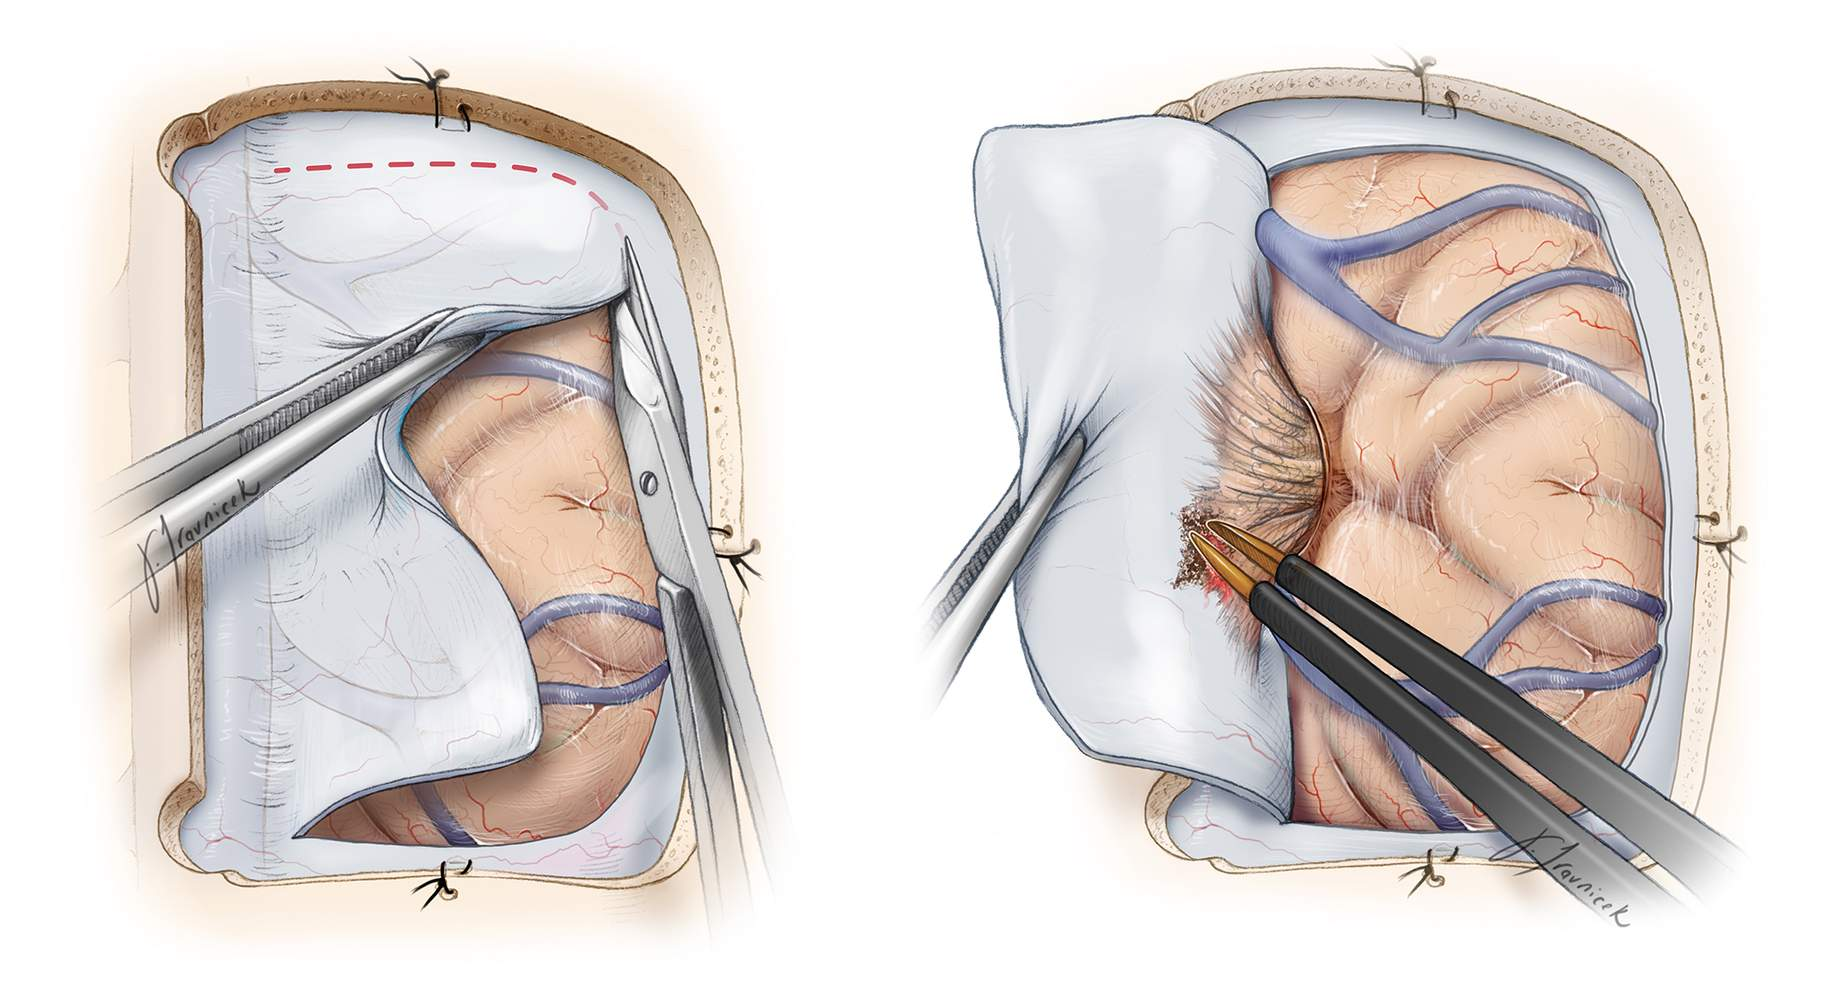 Figure 4: I open the dura in a curvilinear fashion and create a dural flap based on the venous sinus. Care is taken not to injure any large draining veins, especially in the perirolandic region. Occasionally a small draining vein may need to be sacrificed. The first incision within the dura is made away from the superior sagittal sinus (left image); this tactic allows early identification of the cortical veins and reliable tracing of their midline drainage patterns.    If a parasagittal vein is encountered draining into the sinus, the dural opening must be adjusted to protect the vein's inlet into the sinus. The dural base of the tumor is coagulated early on for tumor devascularization (right image).